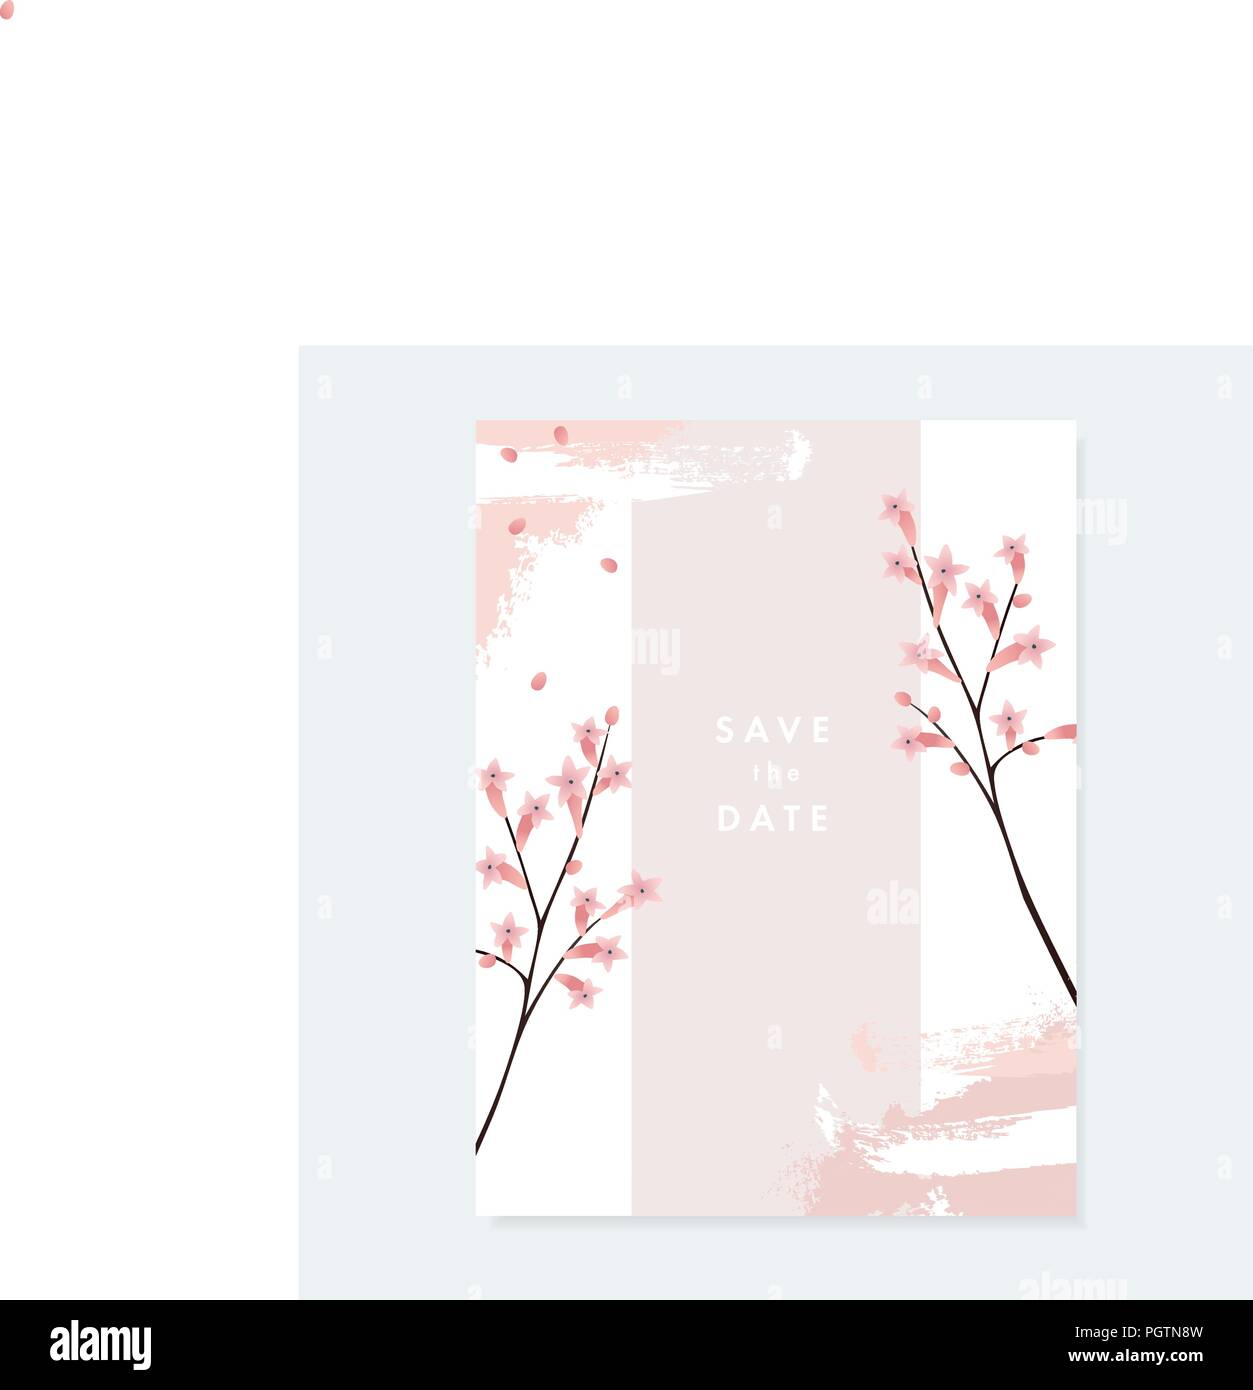 Floral wedding invitation greeting card with pale pink blooming floral wedding invitation greeting card with pale pink blooming flowers and artistic brush stroke texture on white background simple botanical design m4hsunfo